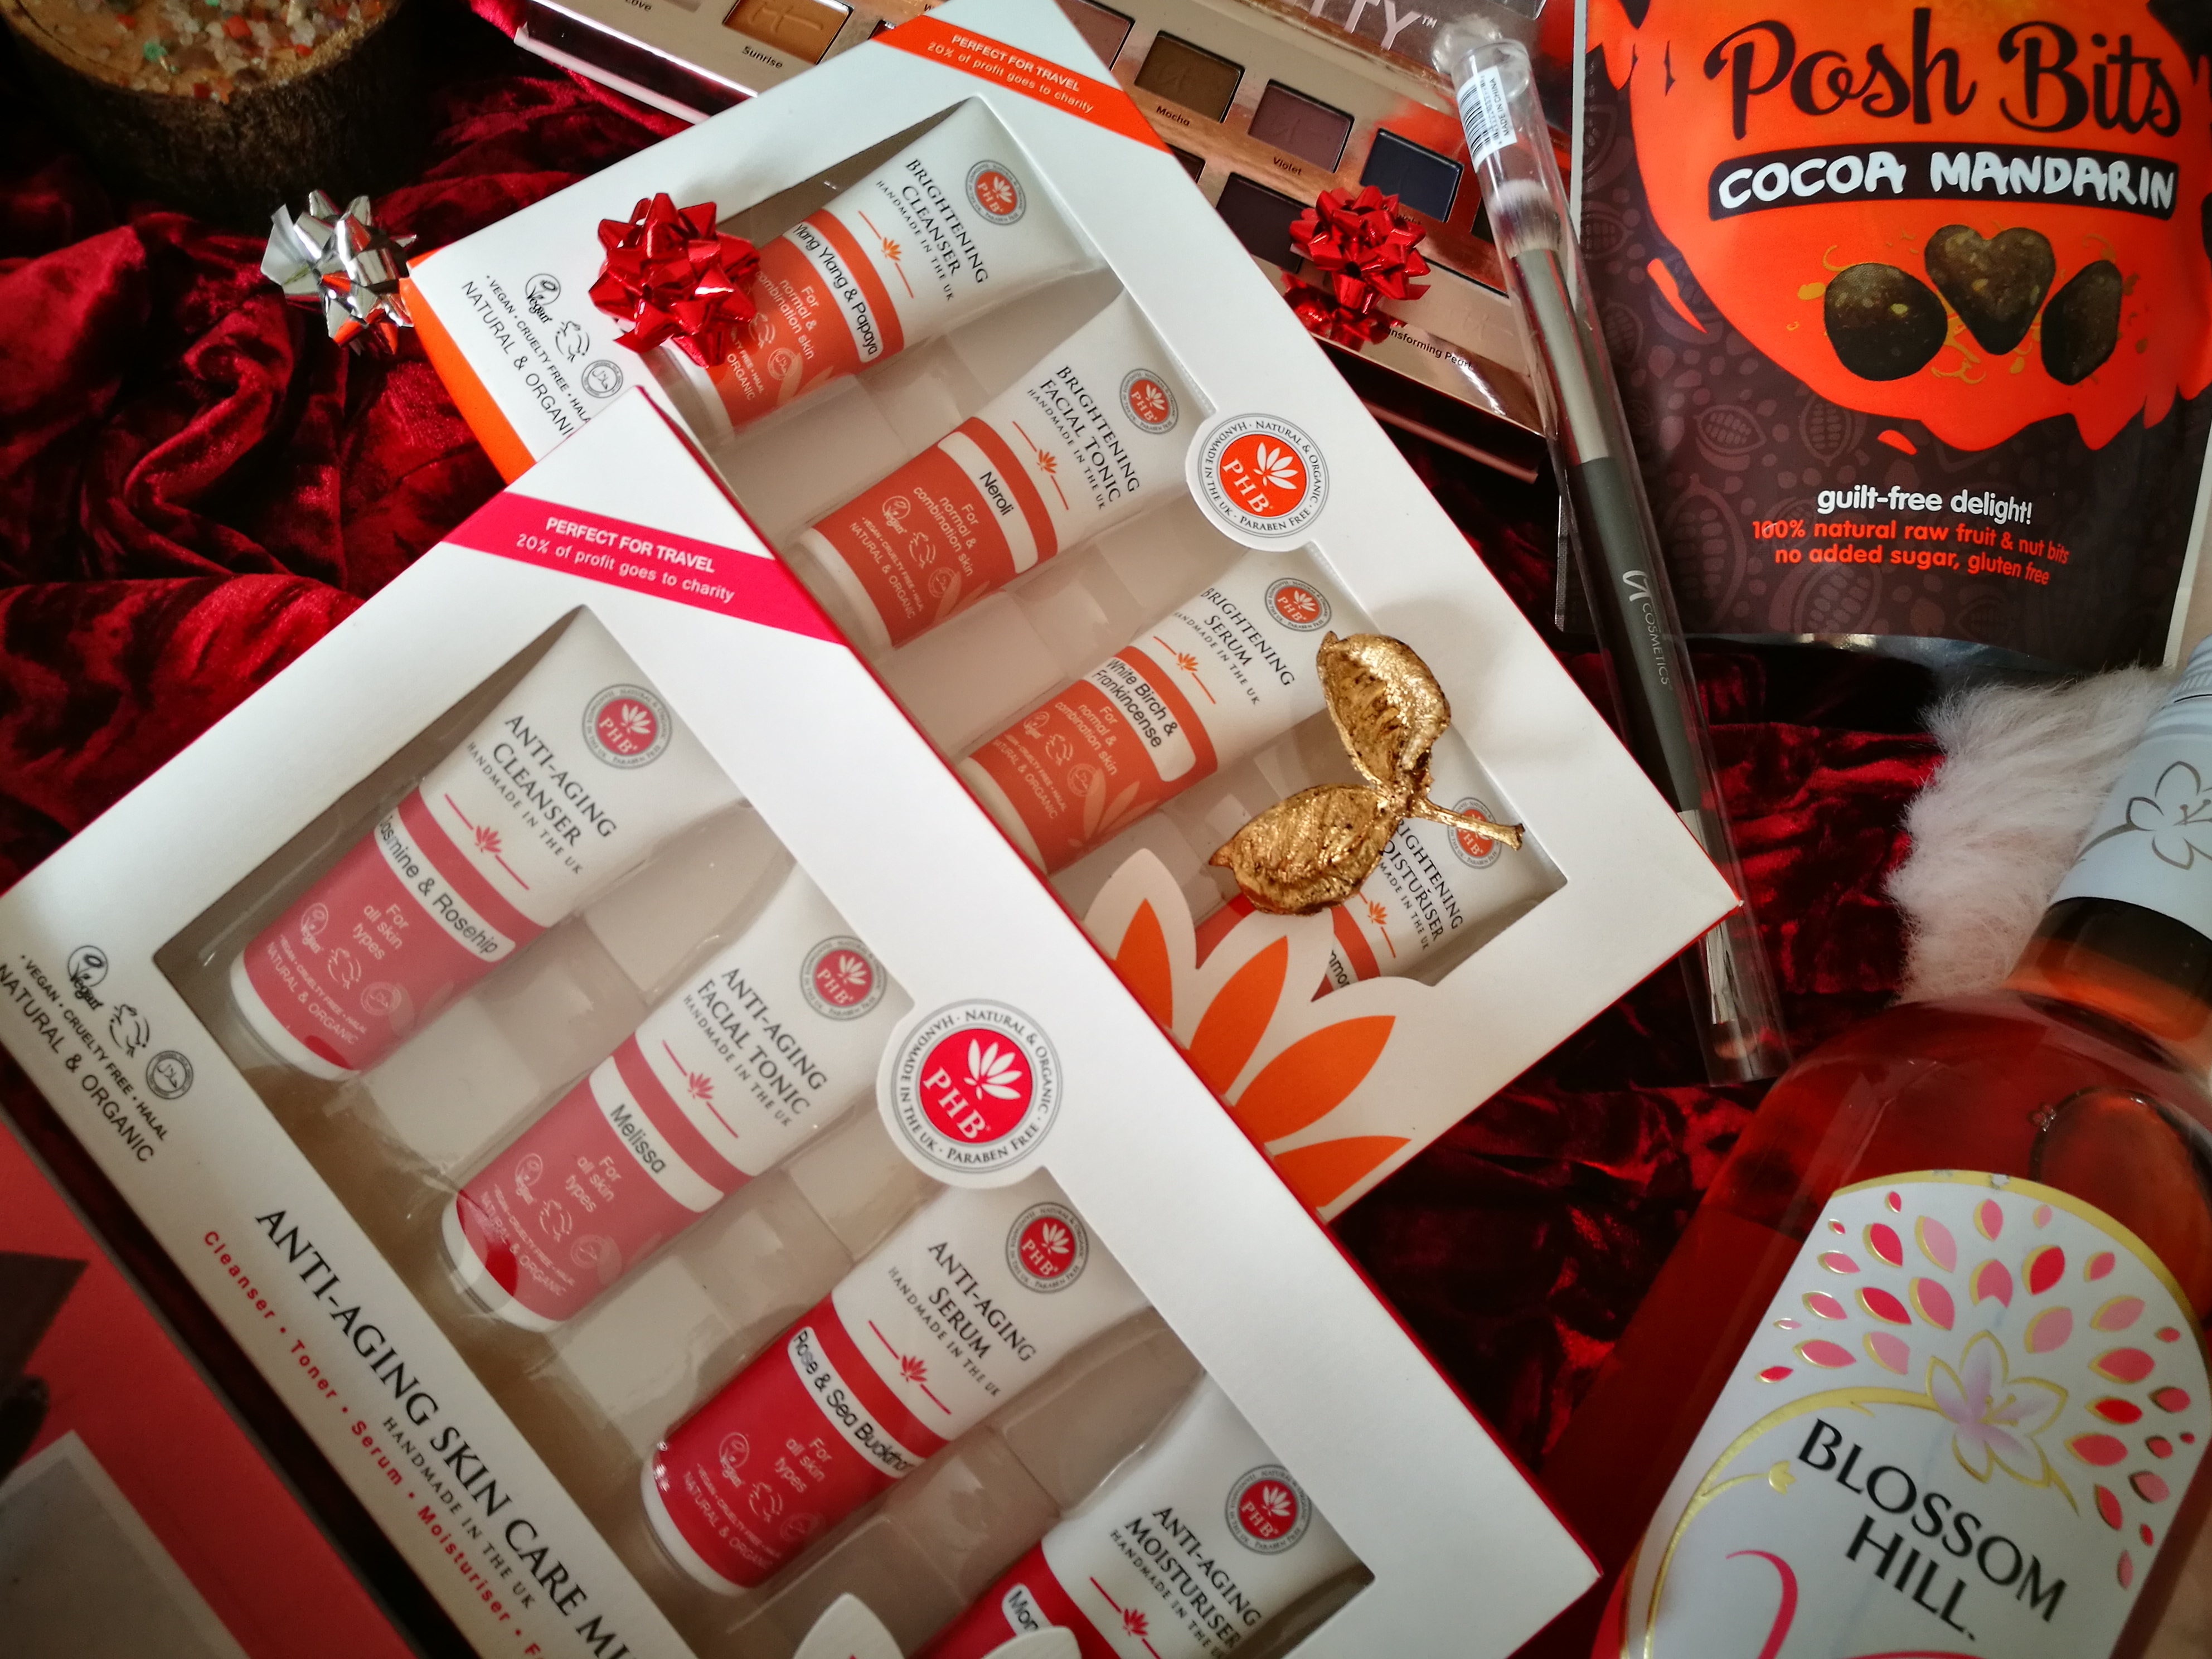 PHB Ethical Beauty Skin Care travel gift sets